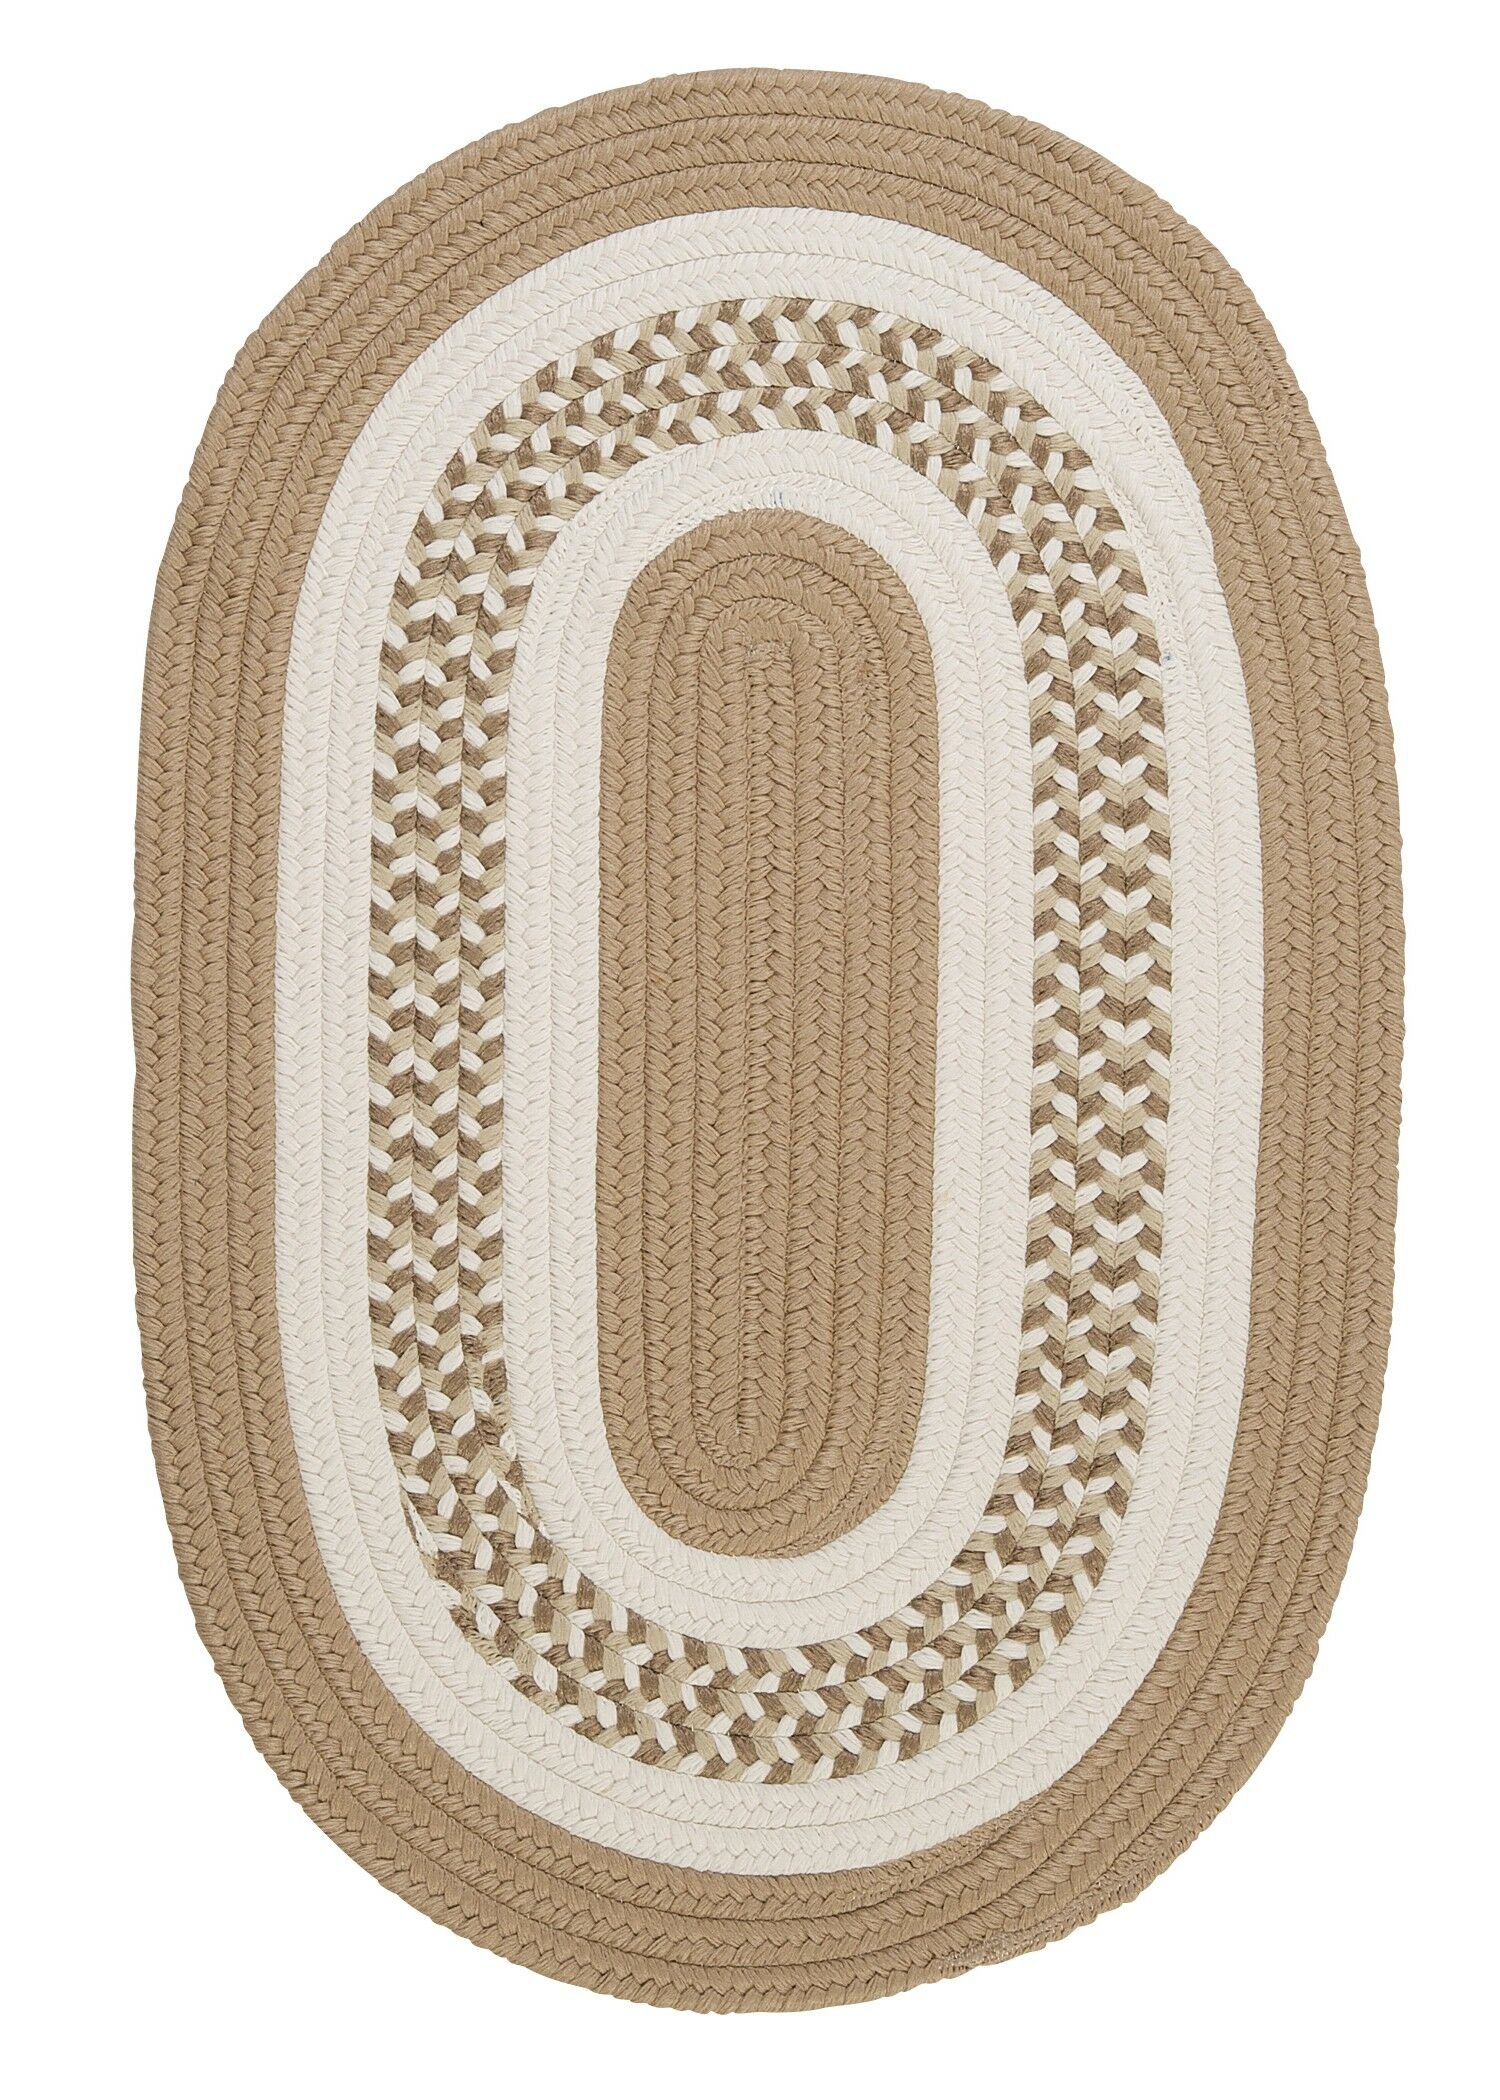 Germain Cuban Sand/Beige Area Rug Rug Size: Oval Runner 2' x 10'